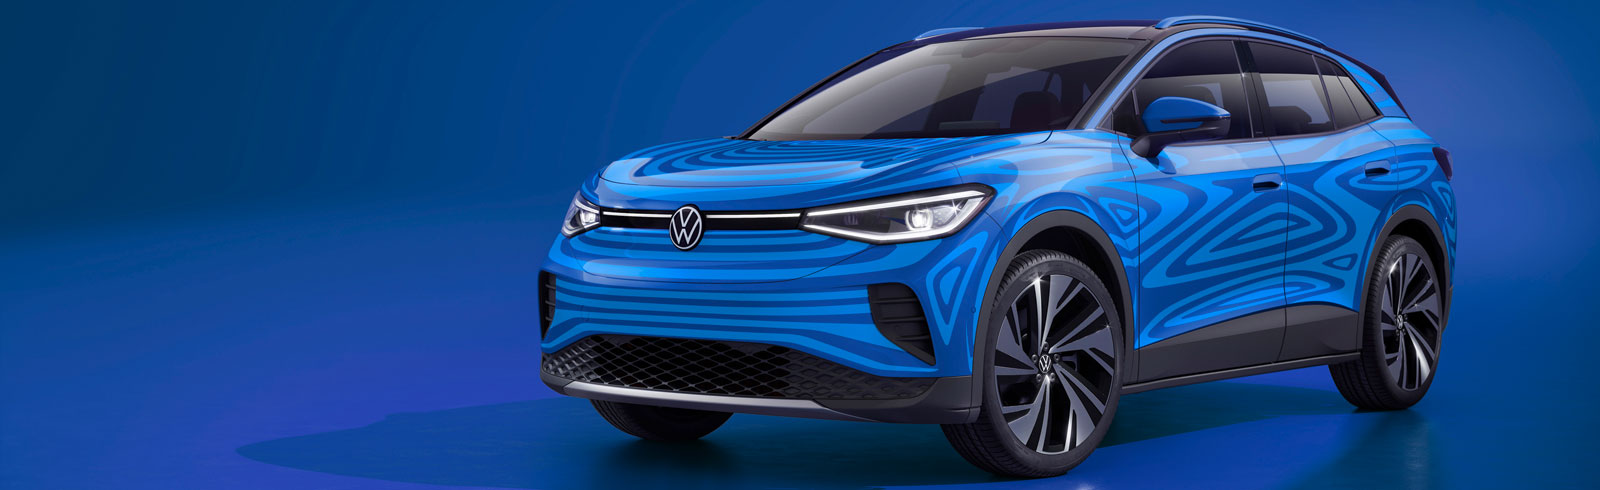 The Volkswagen ID.4 will be launched in China very soon with a range of 500 km